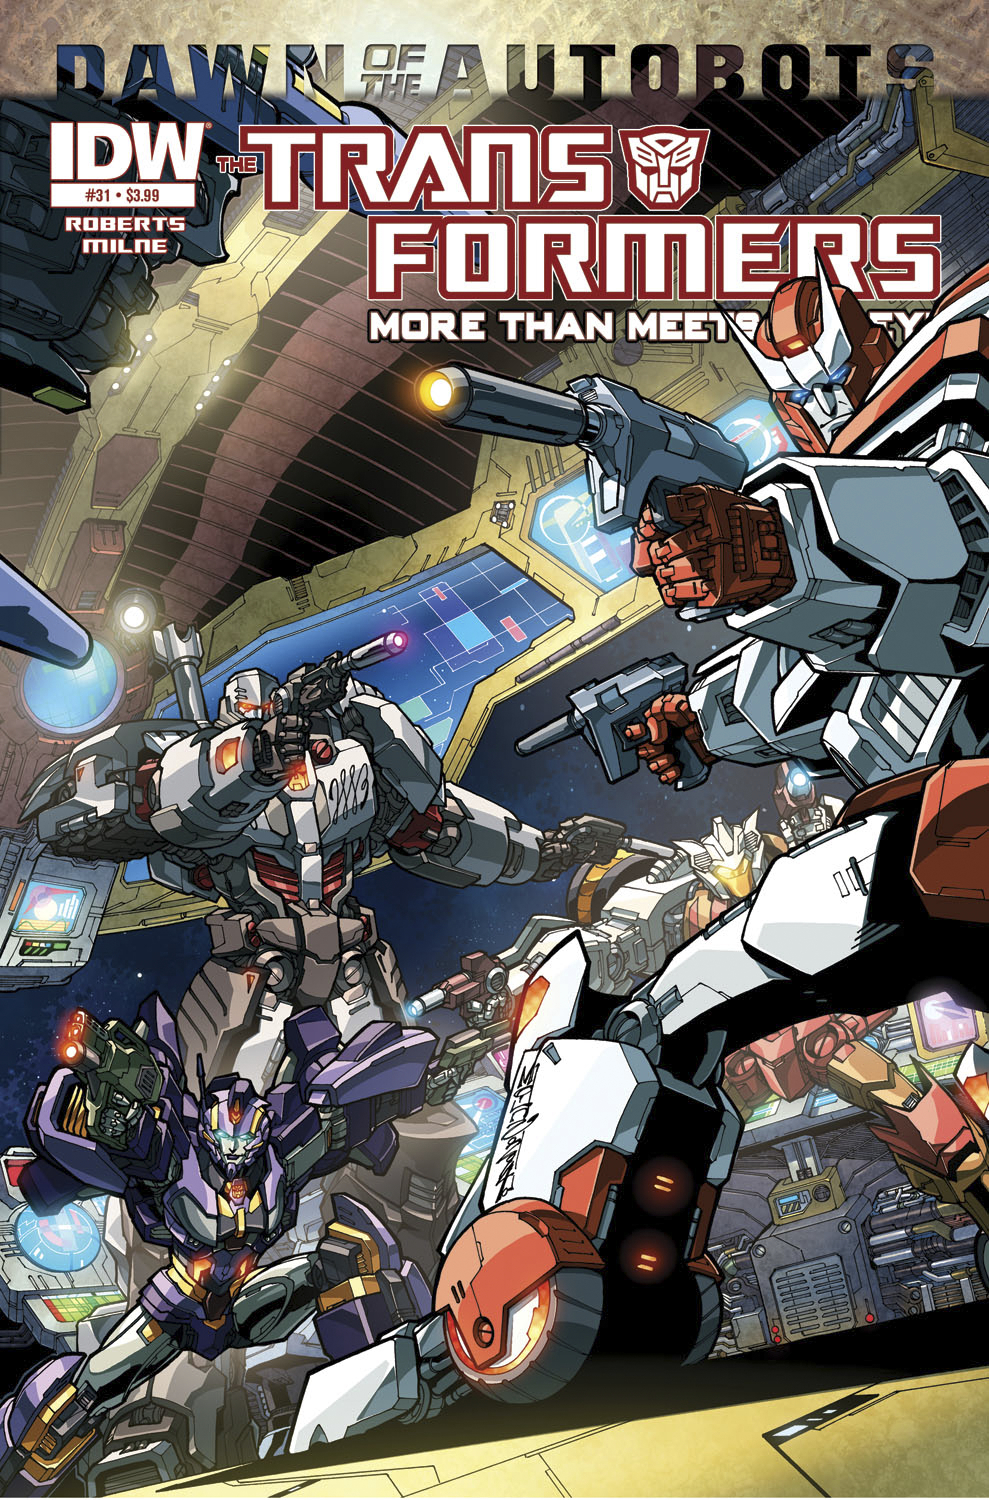 TRANSFORMERS MORE THAN MEETS EYE #31 DAWN O/T AUTOBOTS